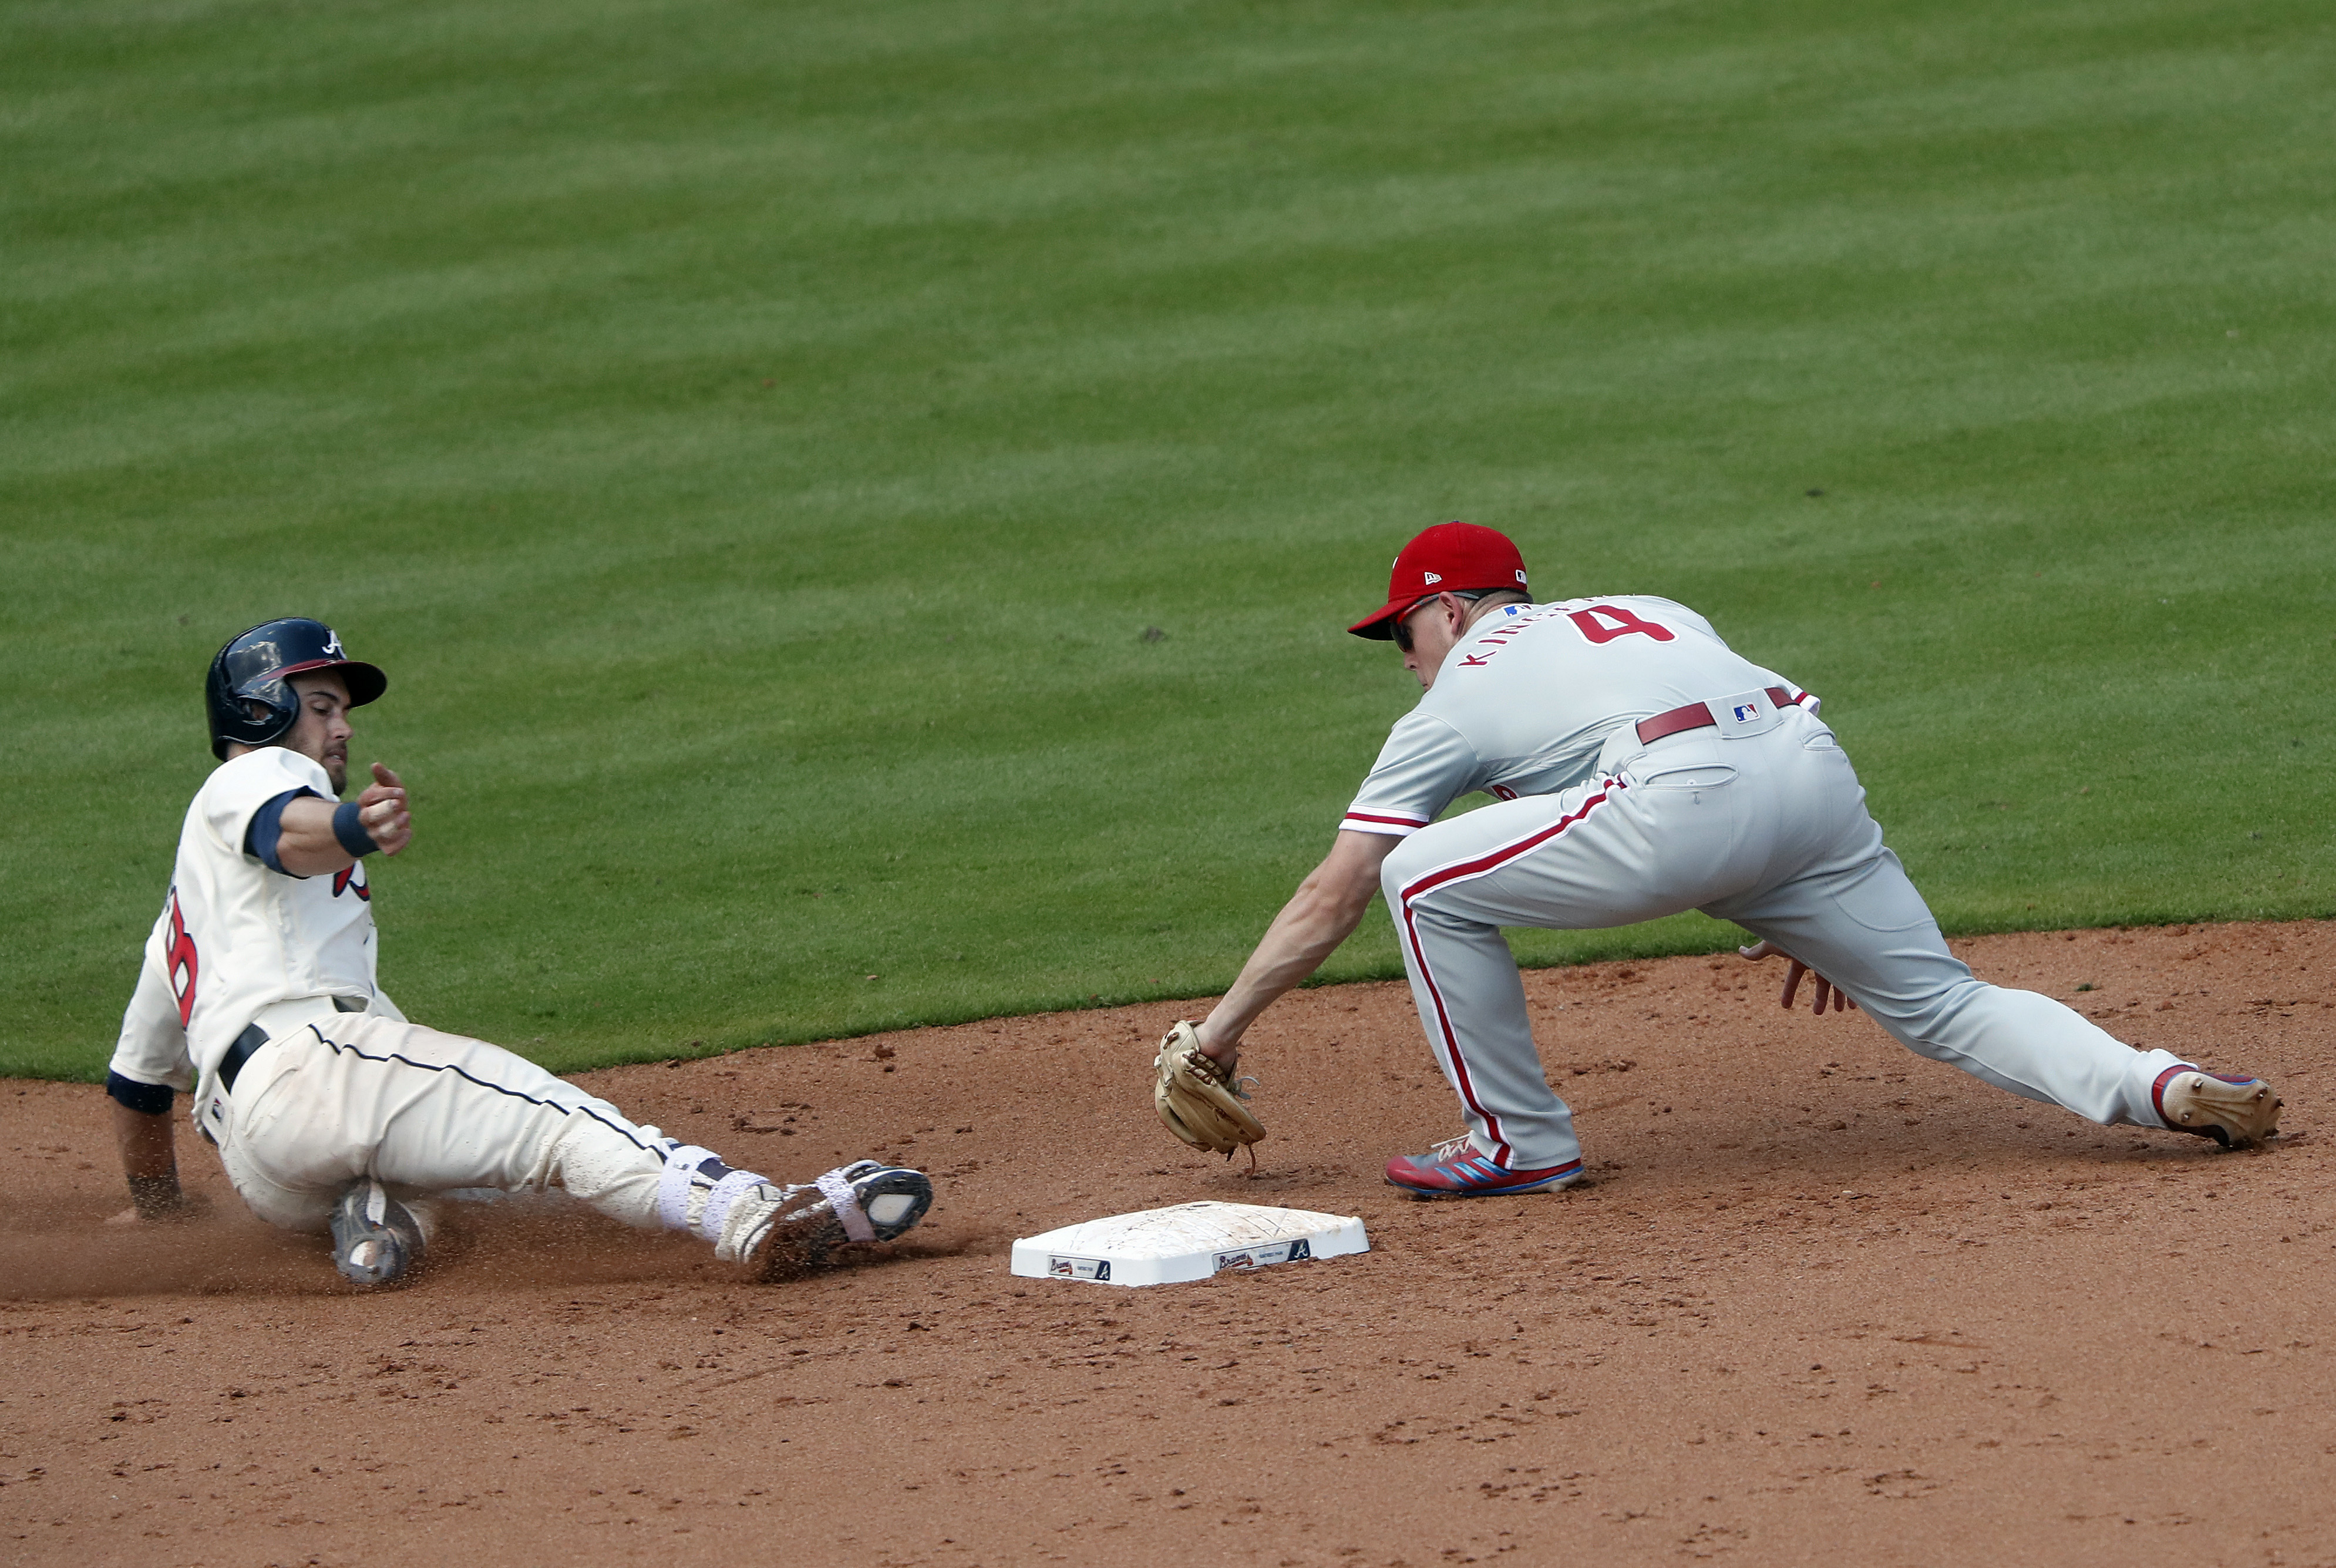 The Braves� Preston Tucker slides ahead of the tag from Phillies second baseman Scott Kingery after a fielding error by third baseman Maikel Franco in the sixth inning of Sunday�s loss.